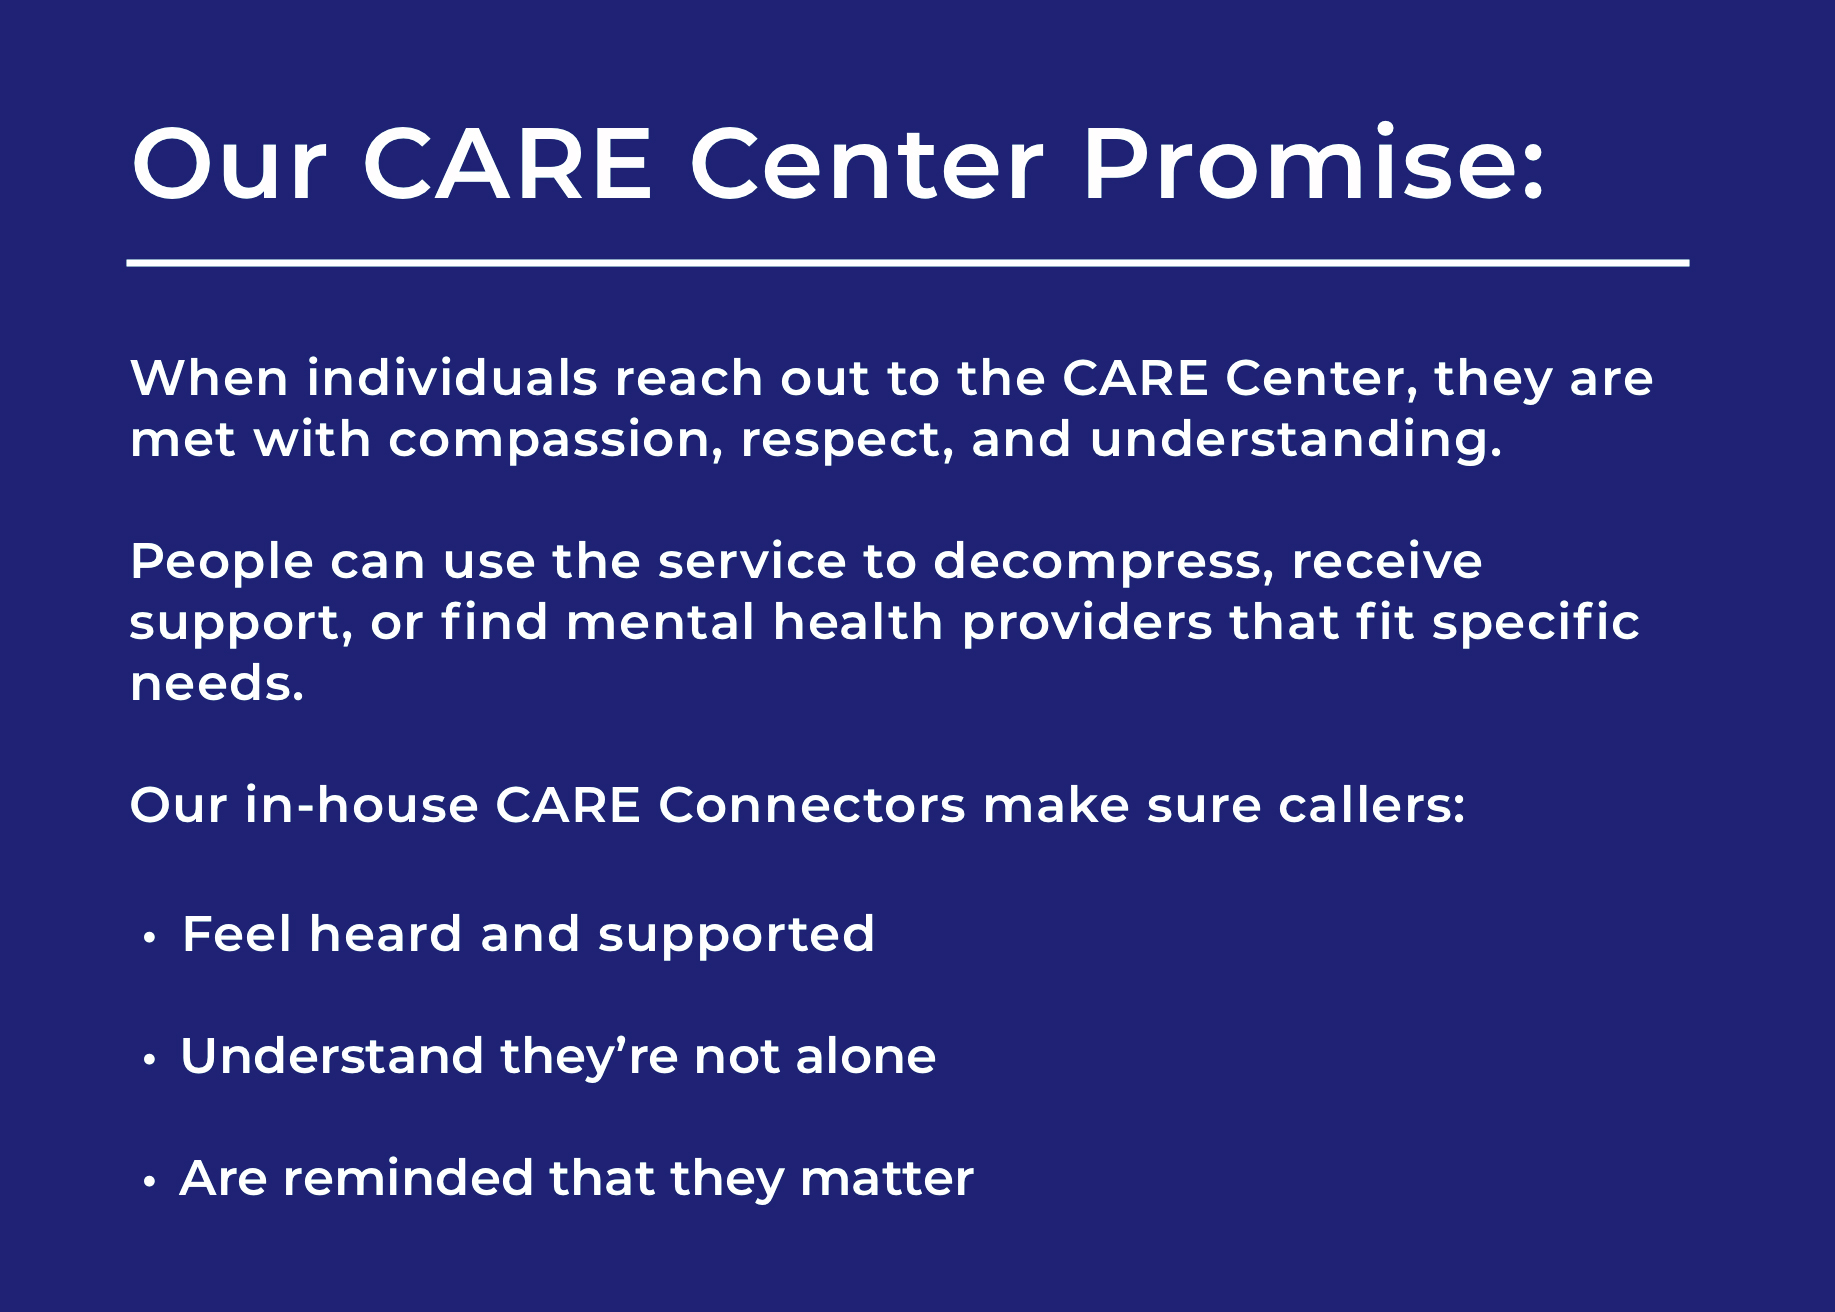 CARE Center Promise 2